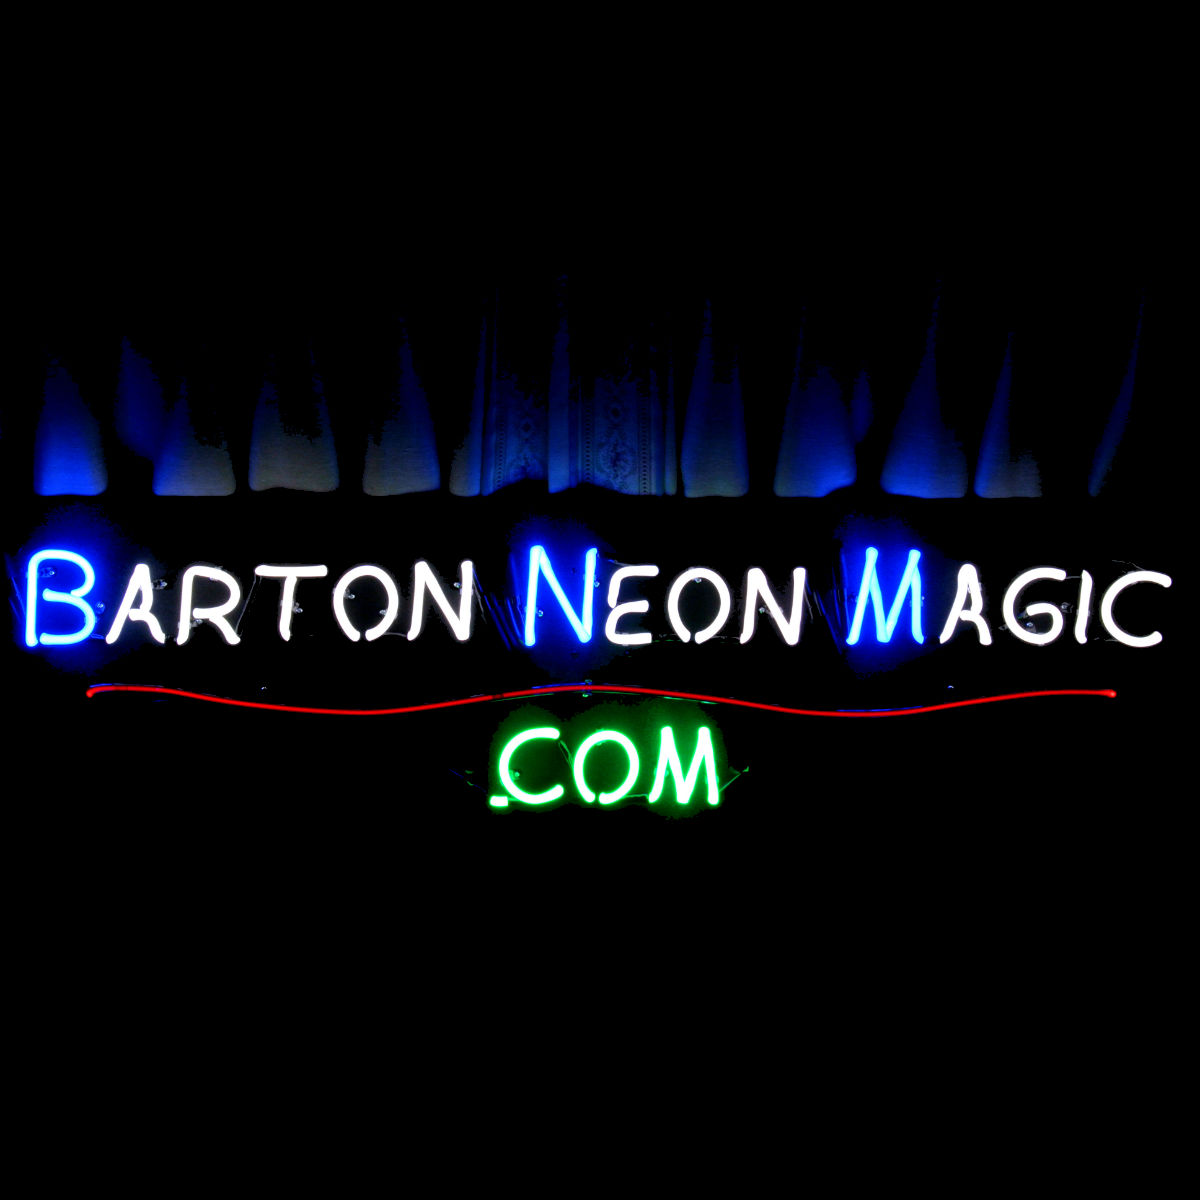 ULTRA-MODERN NEON ART FOR YOUR INTERIOR by John Barton - BartonNeonMagic.com